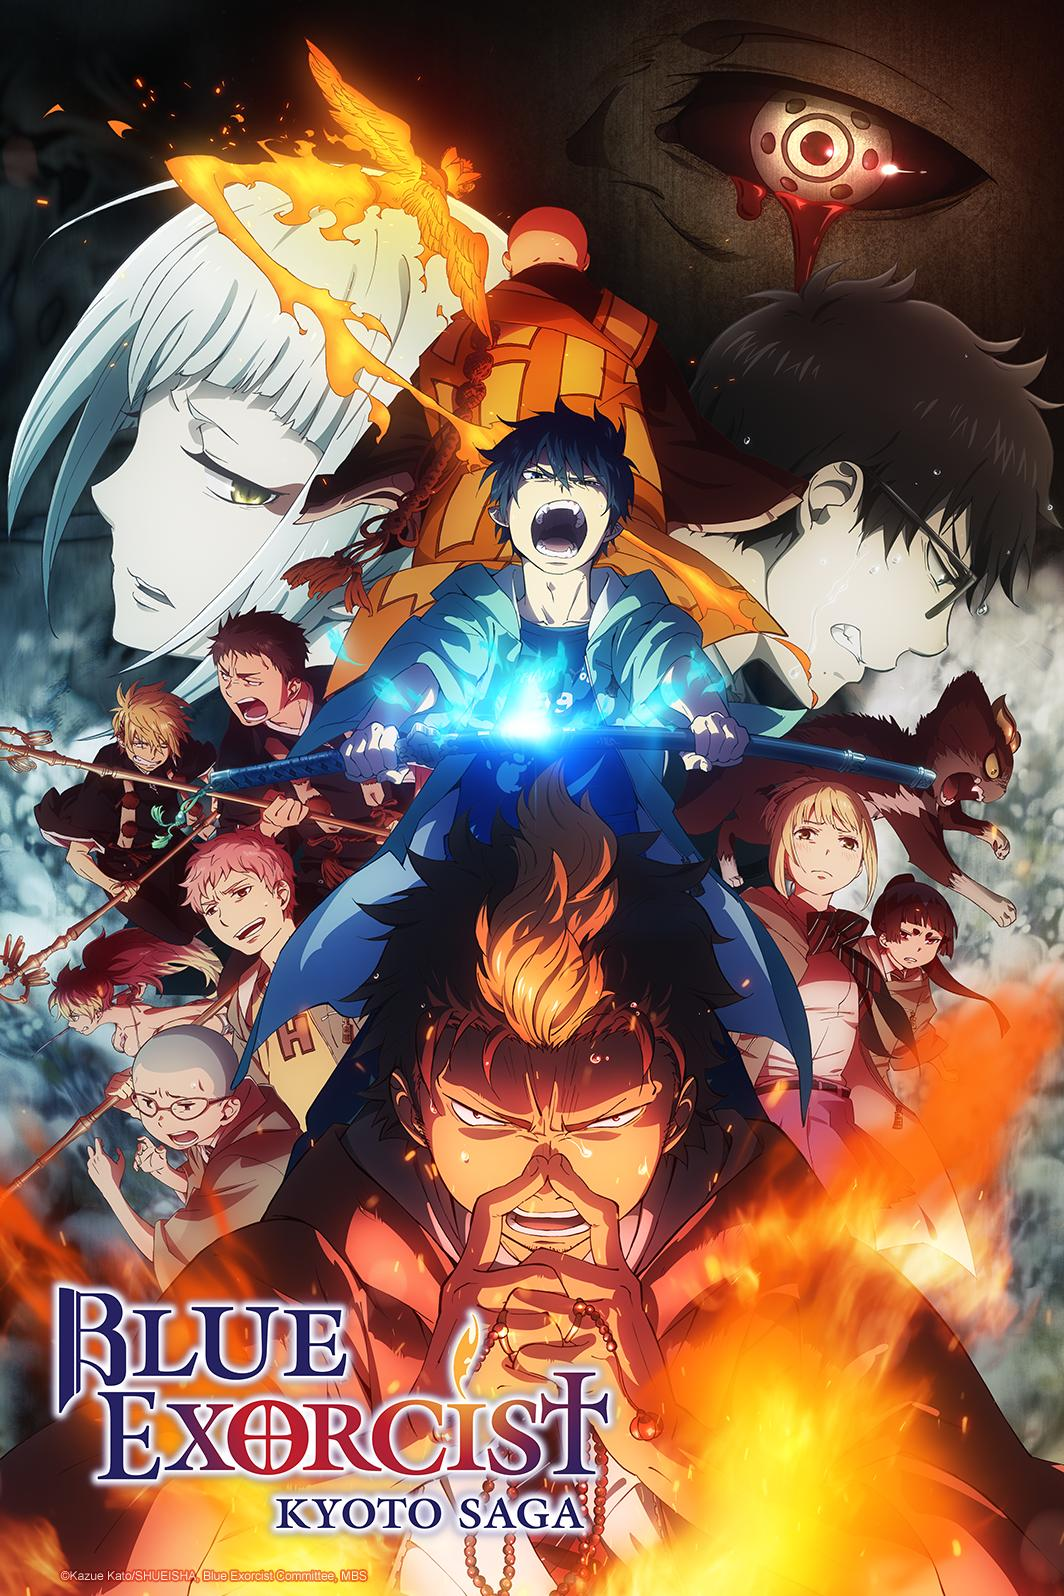 Blue Exorcist - Watch on Crunchyroll